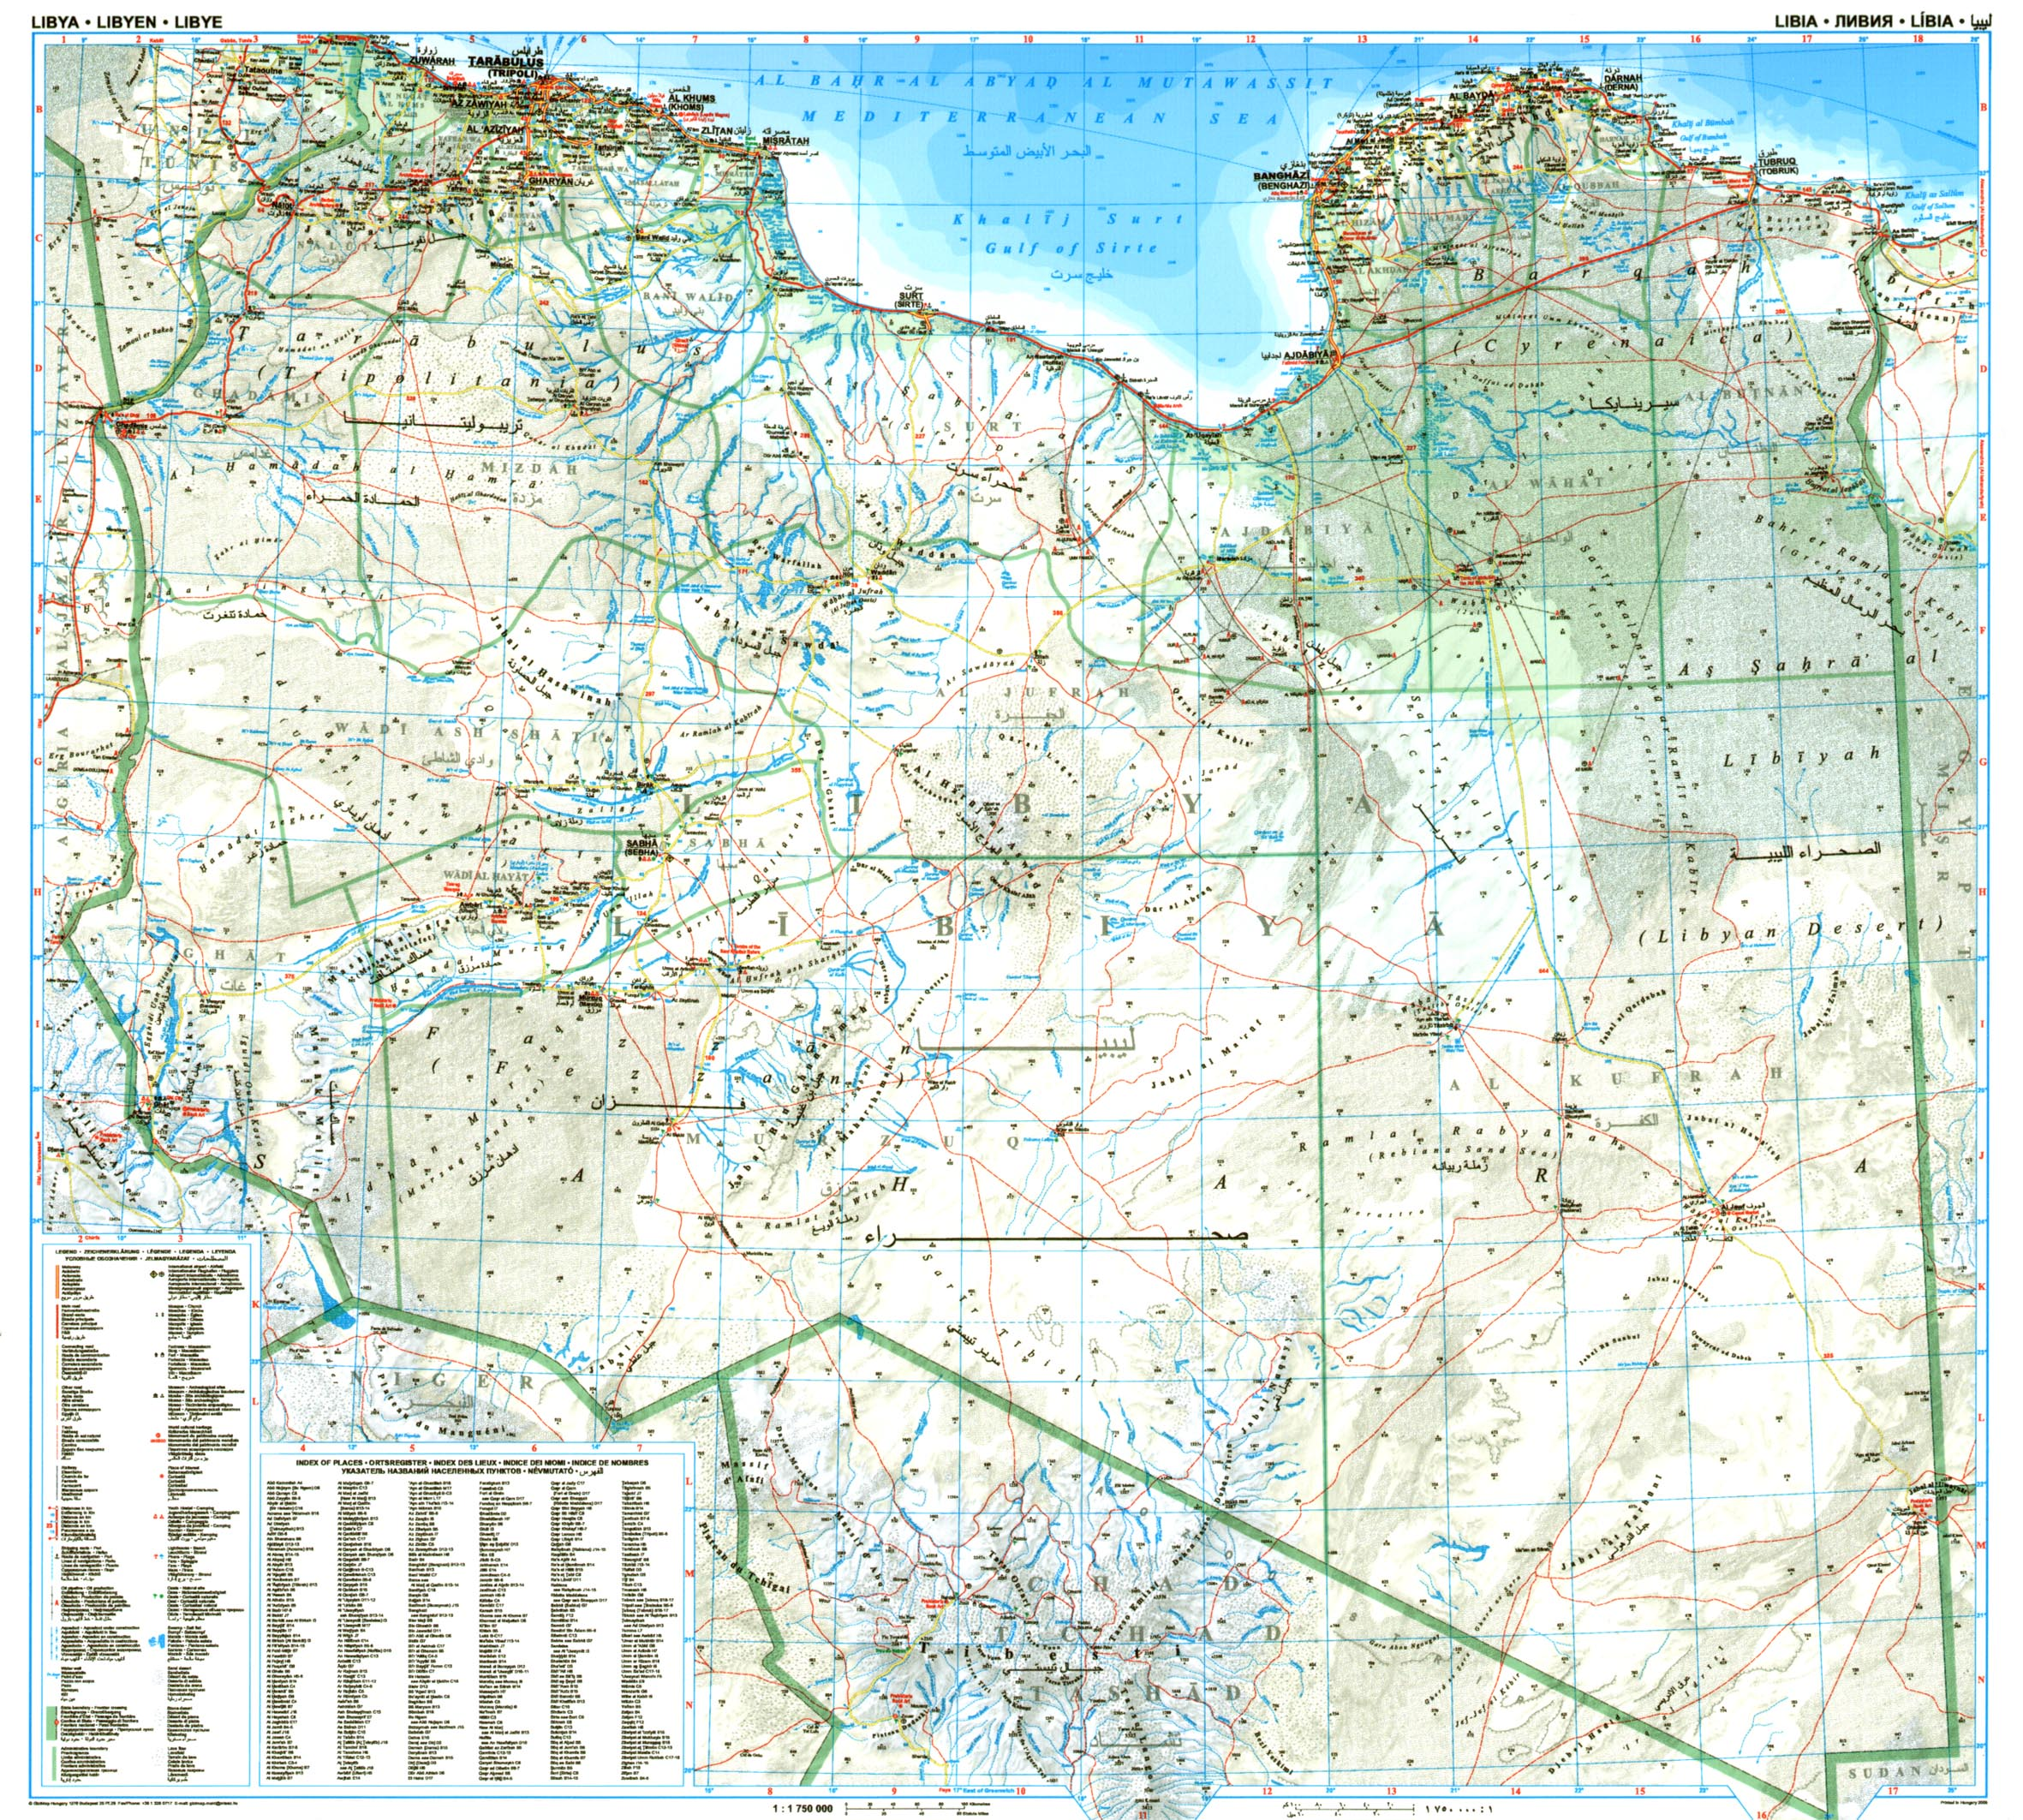 Libya Road Wall Map Africa Countries Africa Wall Maps